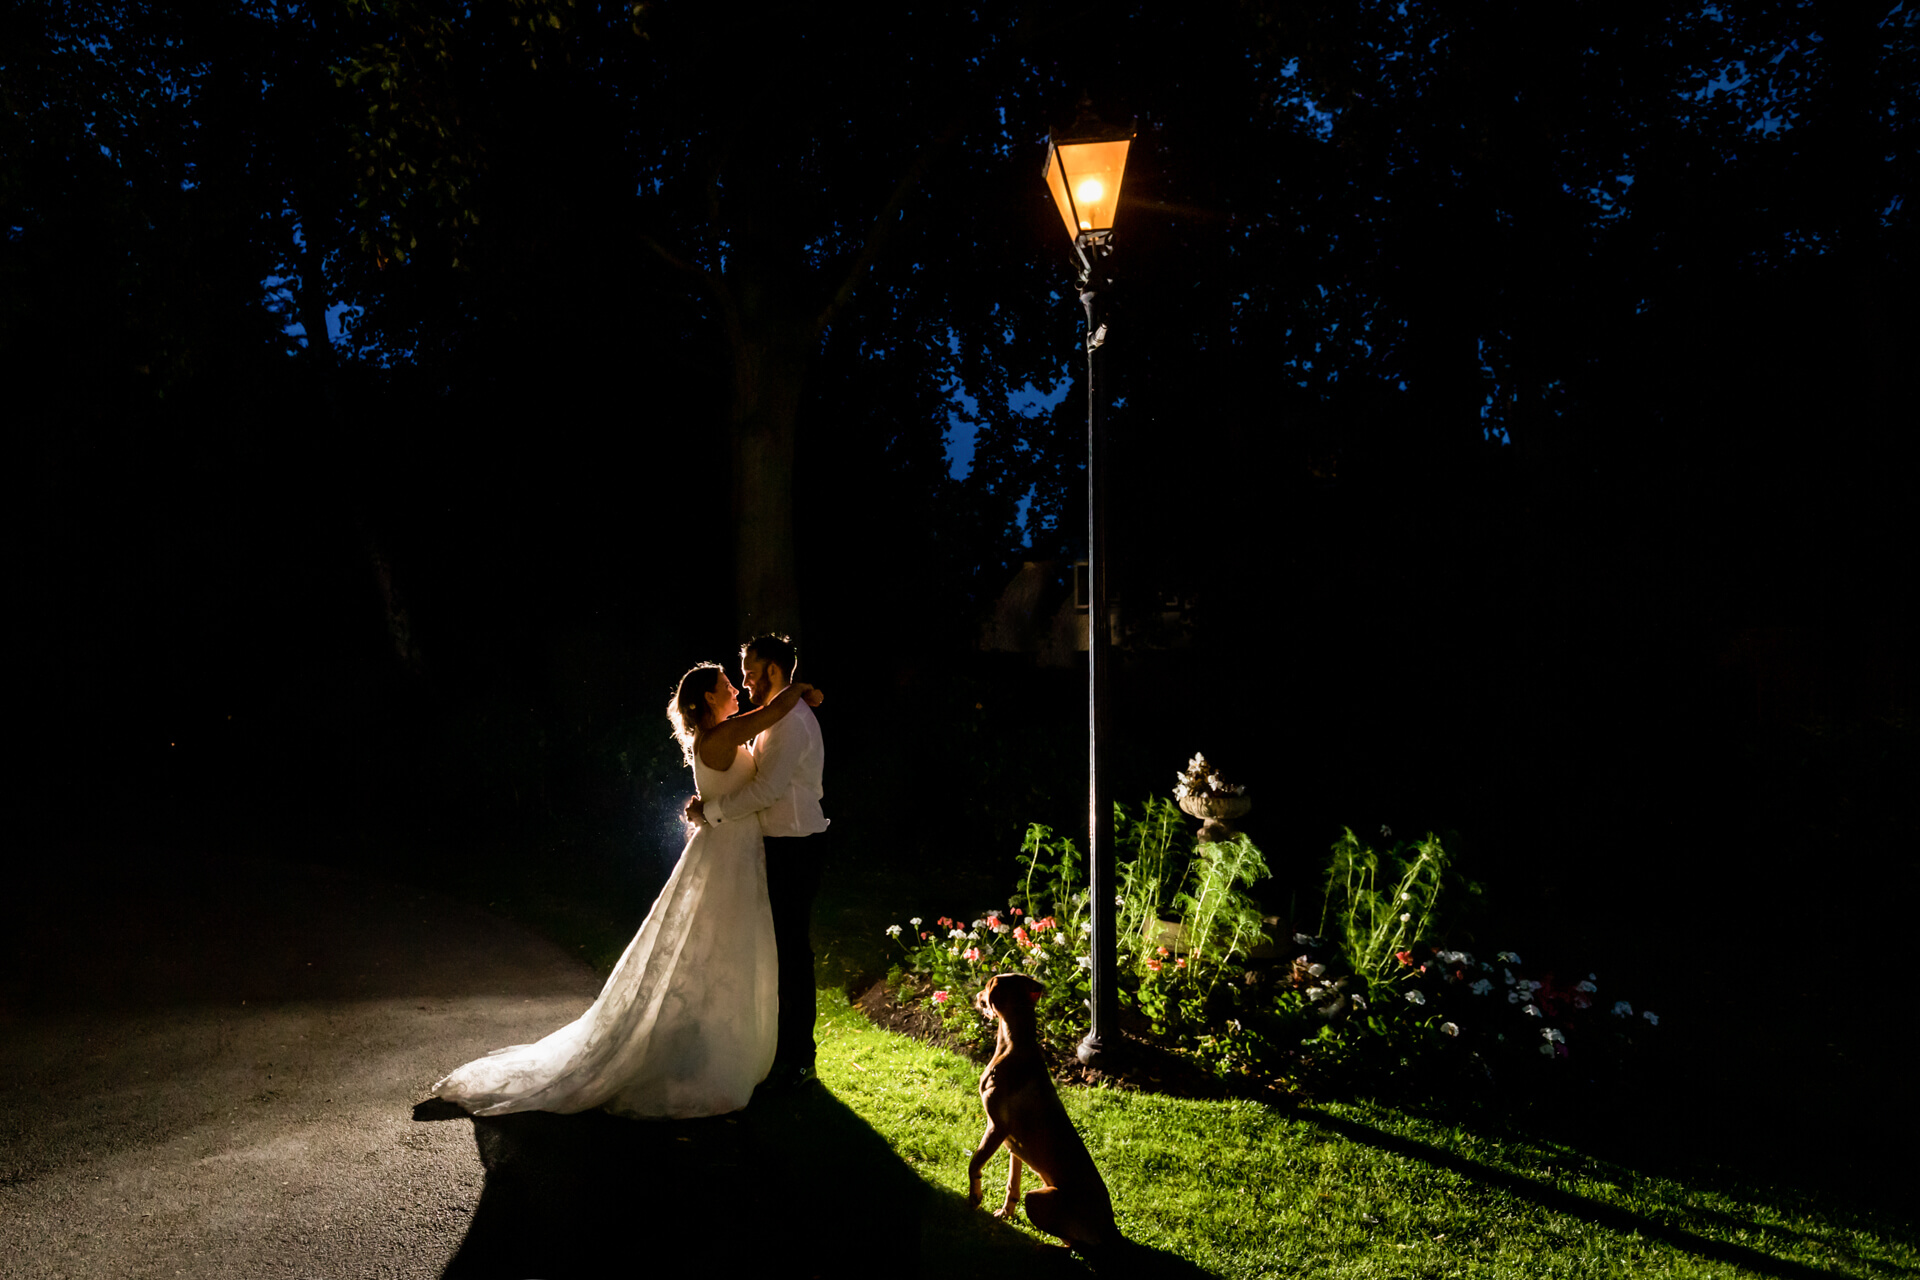 couple and there pet dog standing by a lit lamp at night